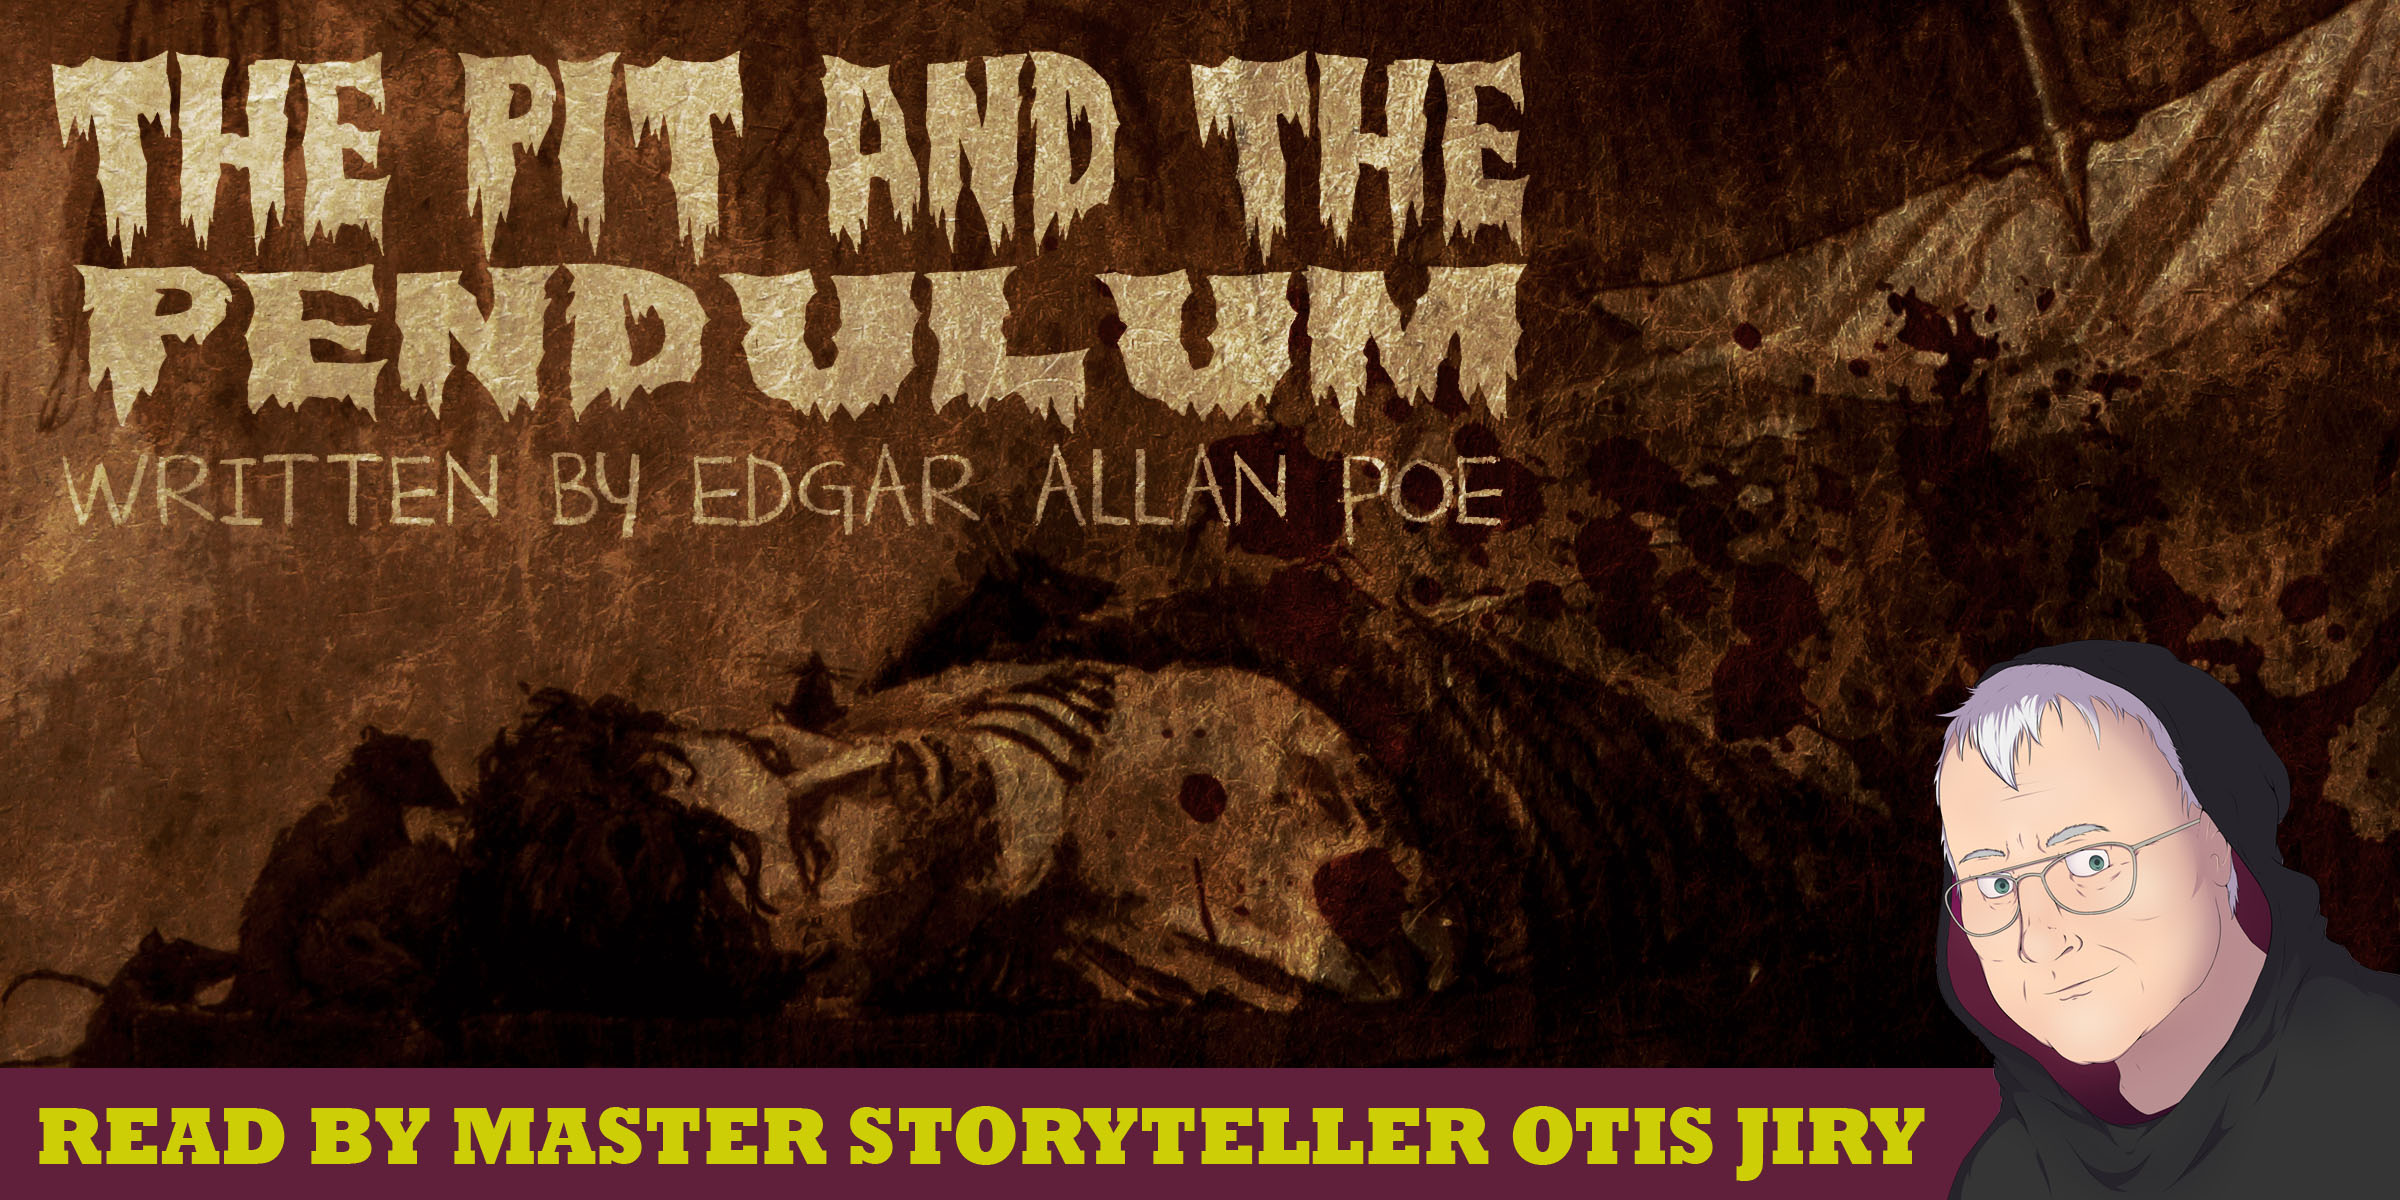 the pit and the pendulum 2 essay The pit and the pendulum essaysthe pit and the pendulum is a short story written by edgar allan poe and uses themes such as the conflict between physical and mental aspects of the human body.